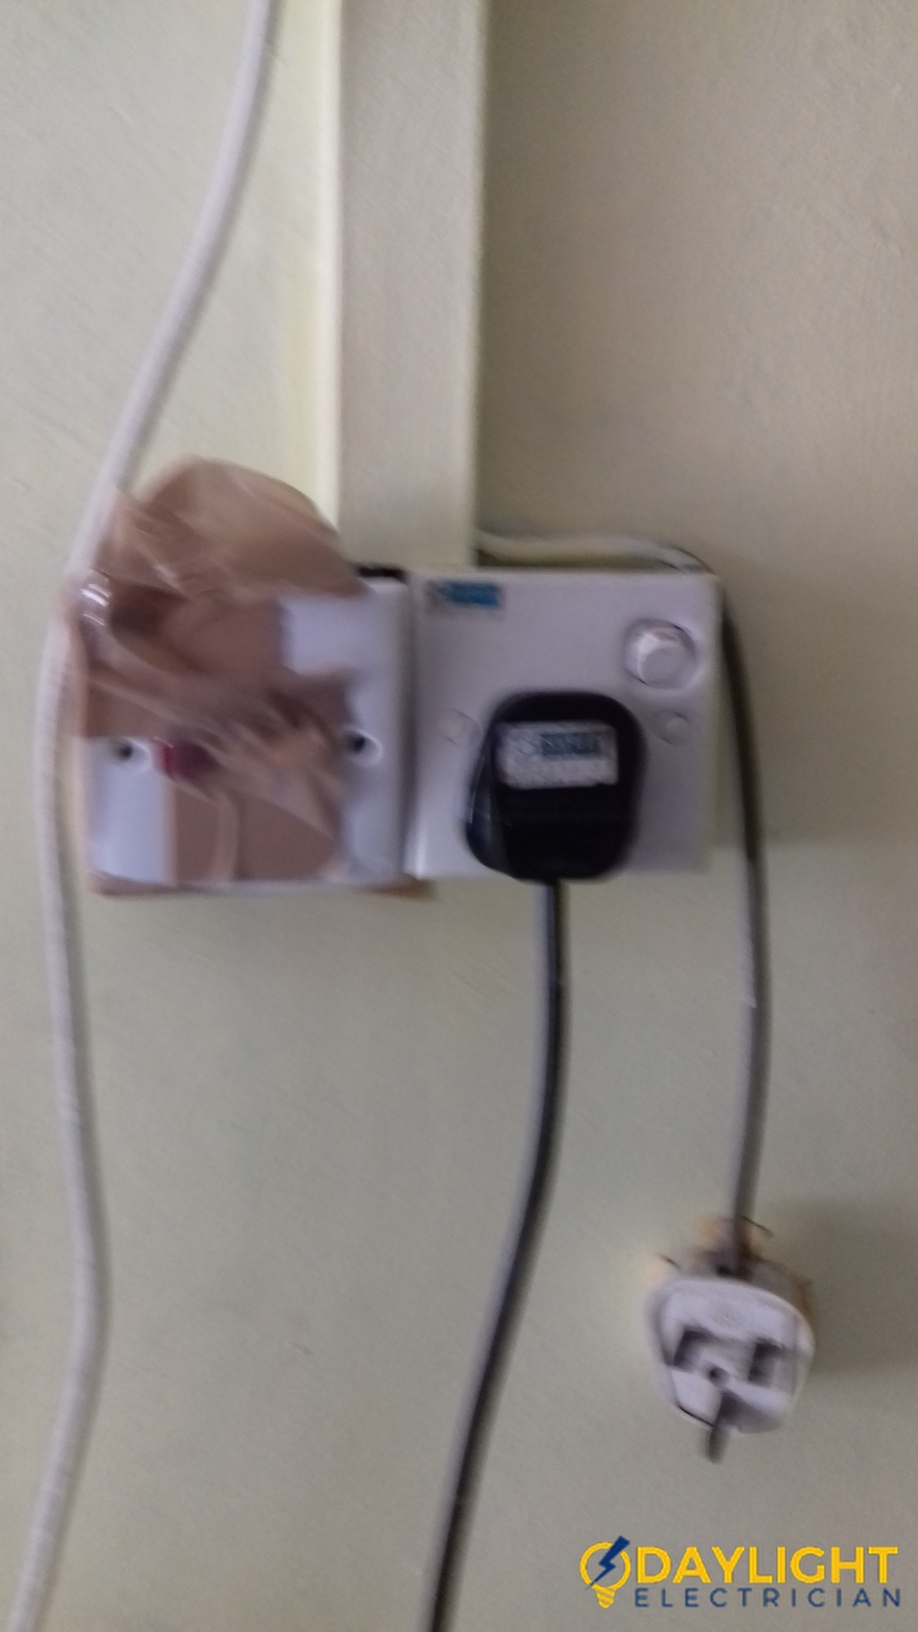 Water-Heater-Switch-Replacement-Electrician-Singapore-HDB-Clementi-1_wm